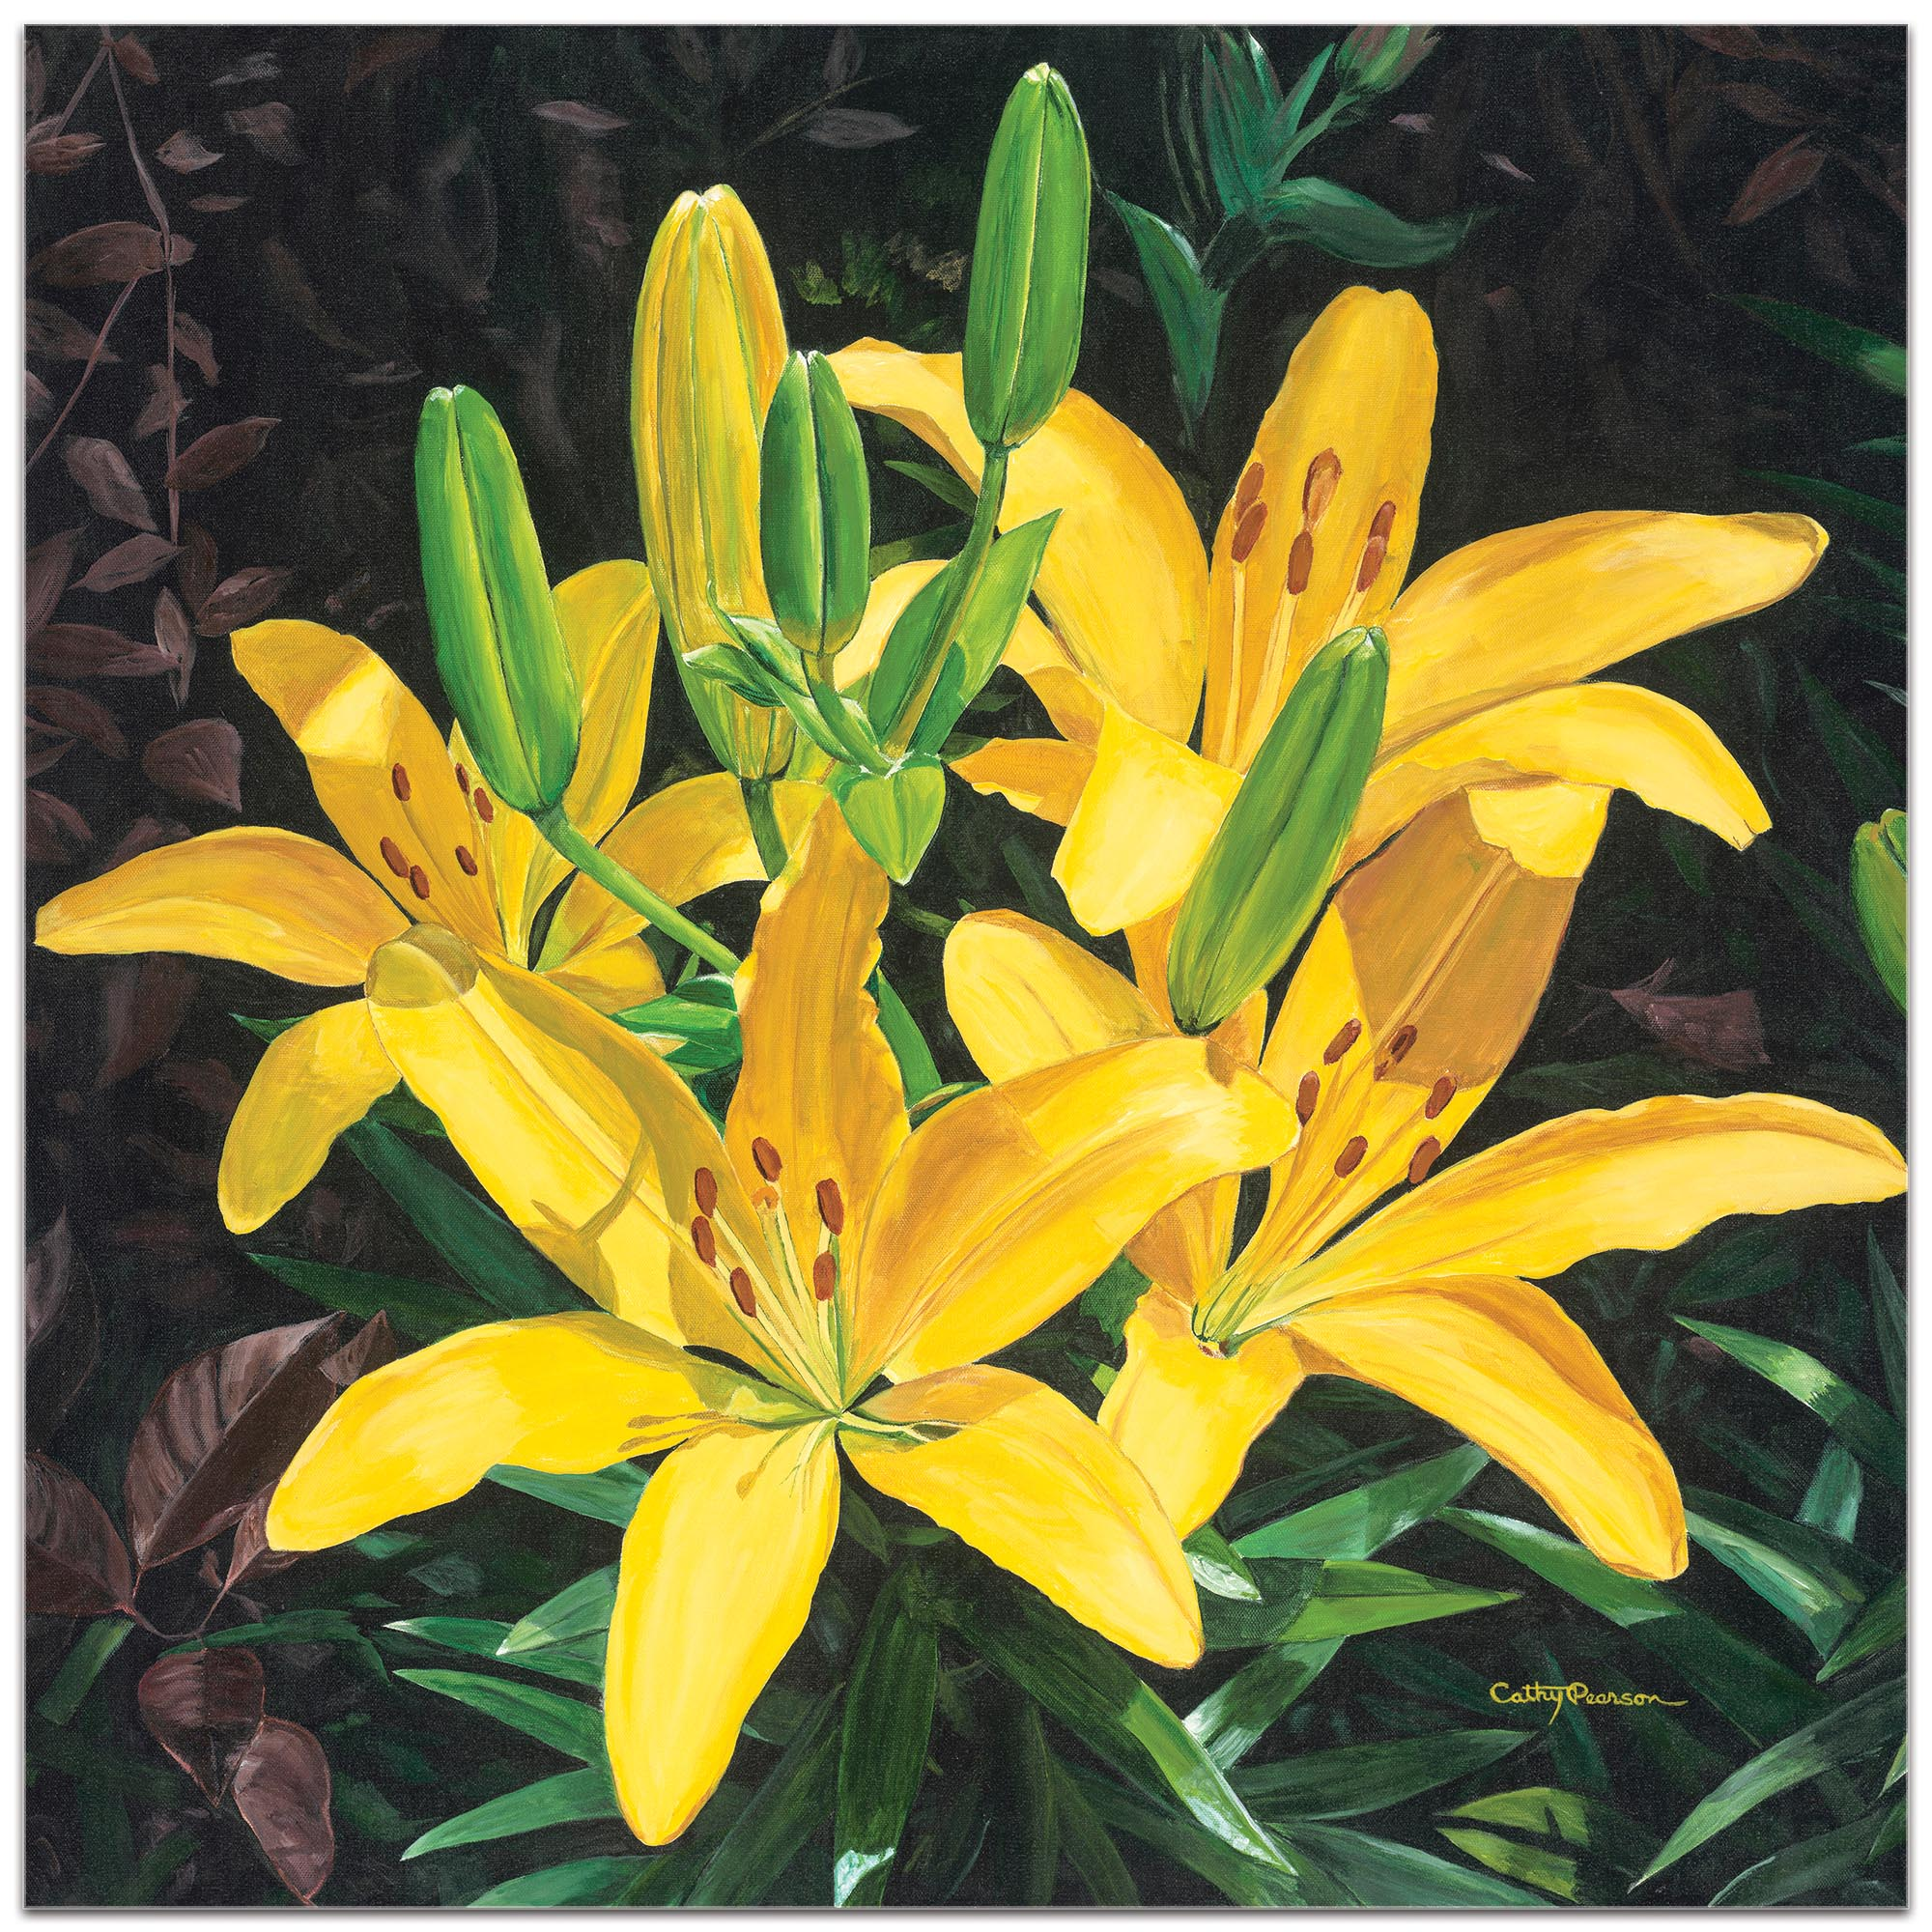 Traditional Wall Art 'Yellow Lilies' - Floral Decor on Metal or Plexiglass - Image 2